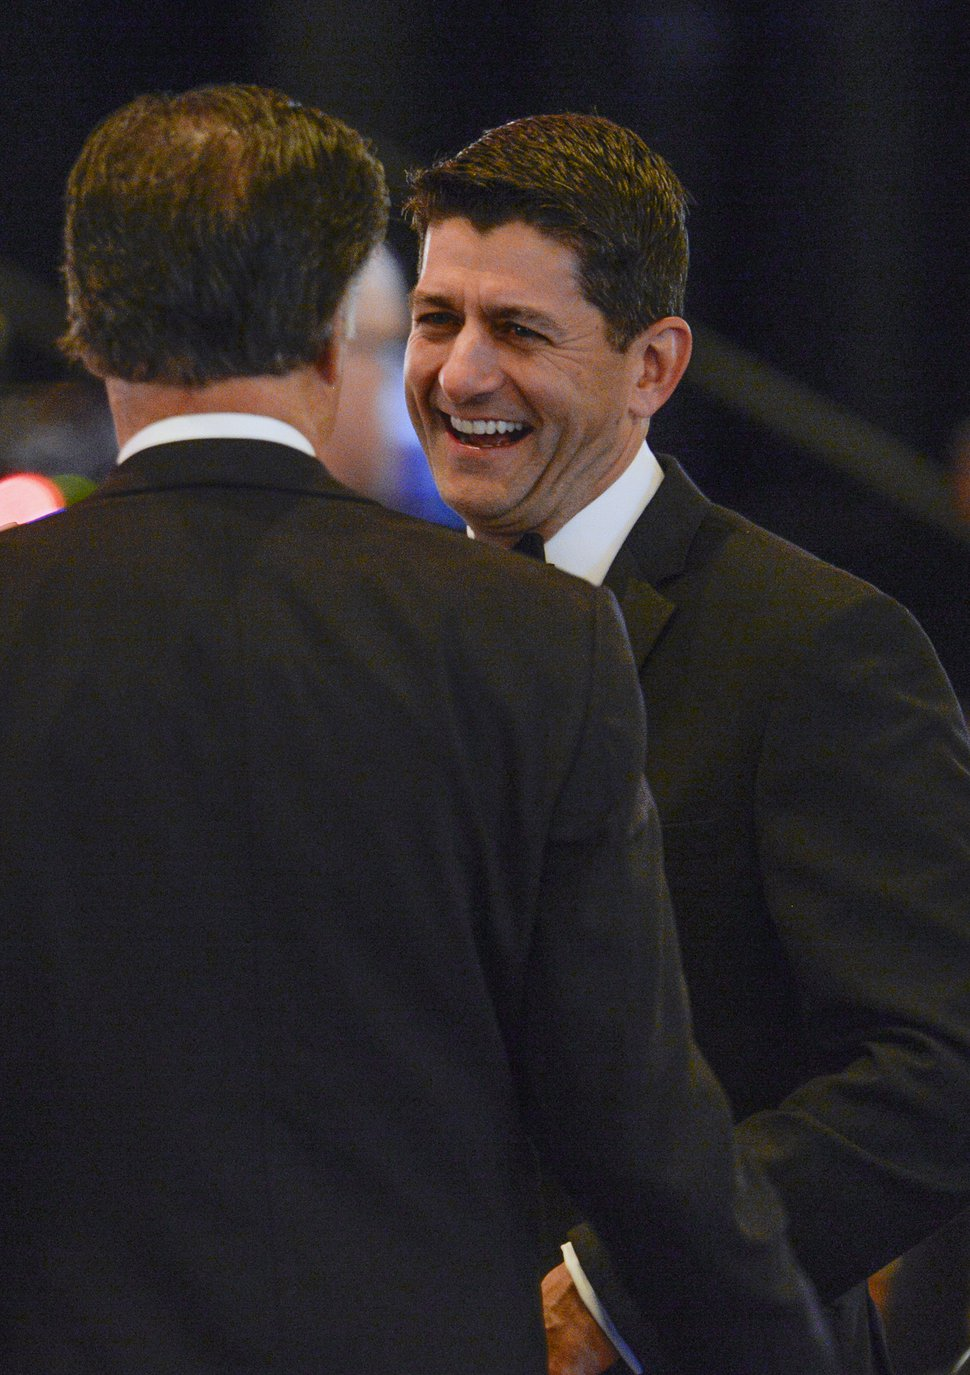 Leah Hogsten | The Salt Lake Tribune U.S. House Speaker Paul Ryan shares a laugh with Republican Senate candidate Mitt Romney during a ceremony honoring Sen. Orrin G. Hatch (R-Utah), Saturday, June 9, 2018, at the Grand America Hotel in Salt Lake City. The Salt Lake Chamber awarded Hatch with the 39th Giant in Our City for distinguished service and professional achievement throughout his political career.